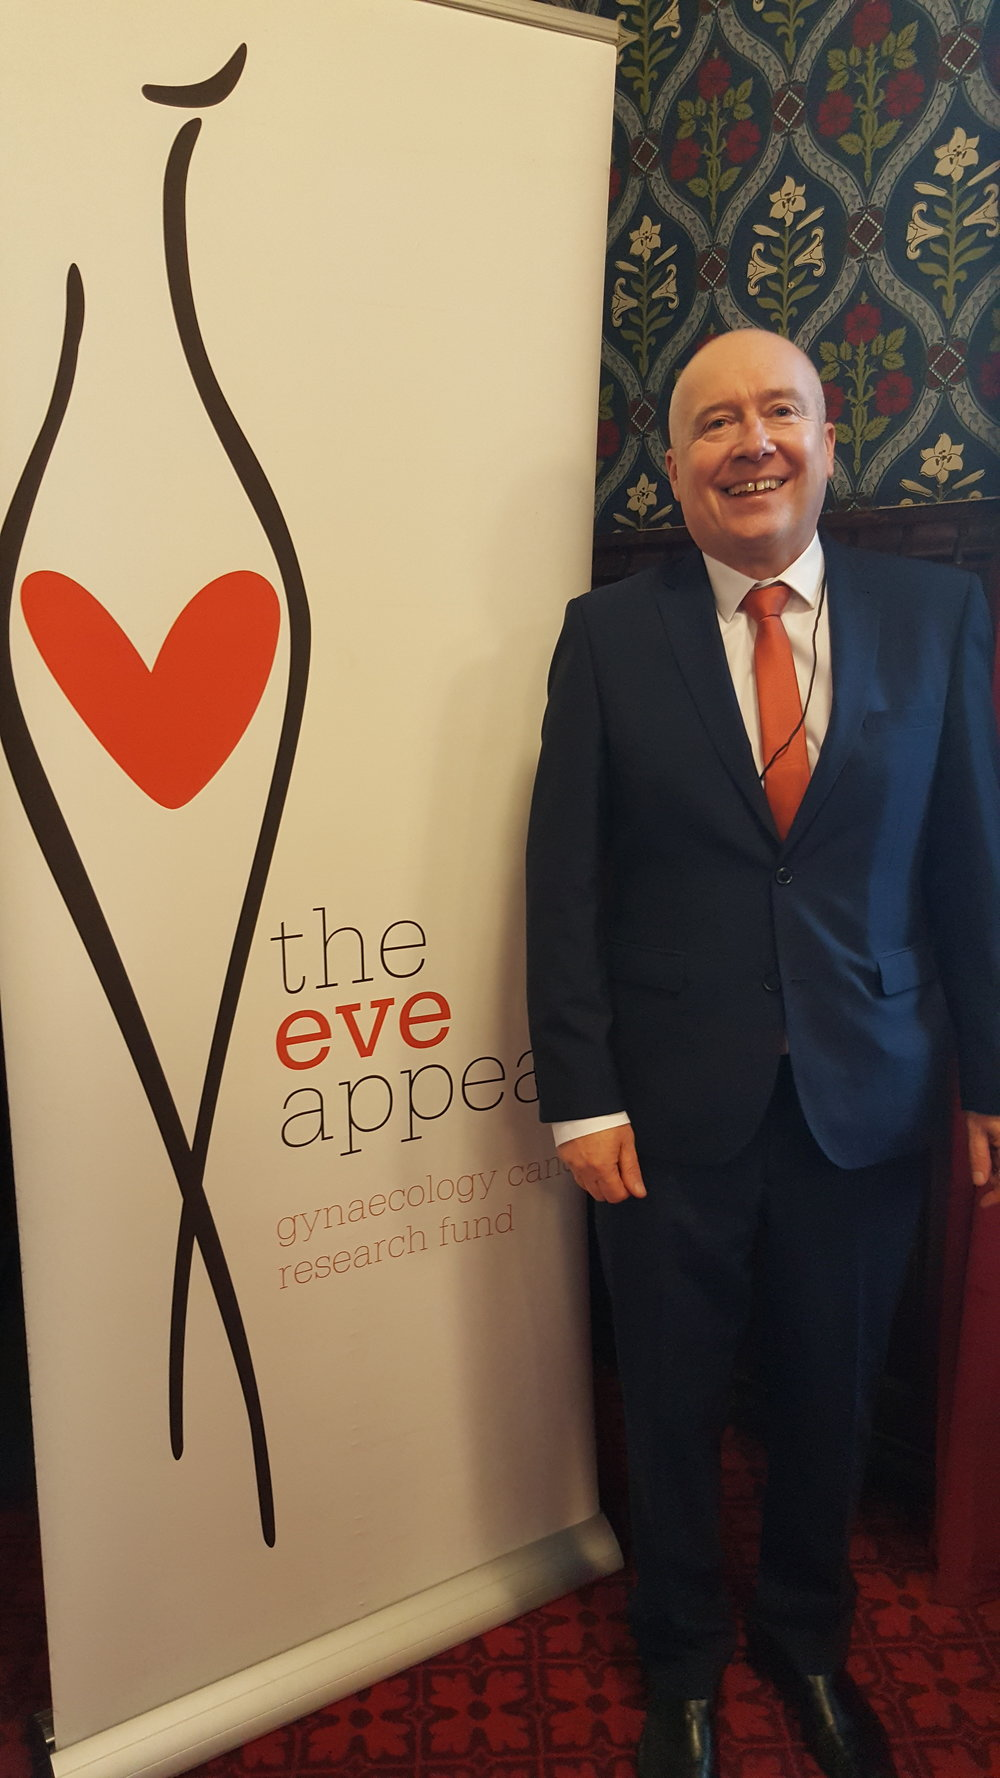 Chris working with @Eveappeal